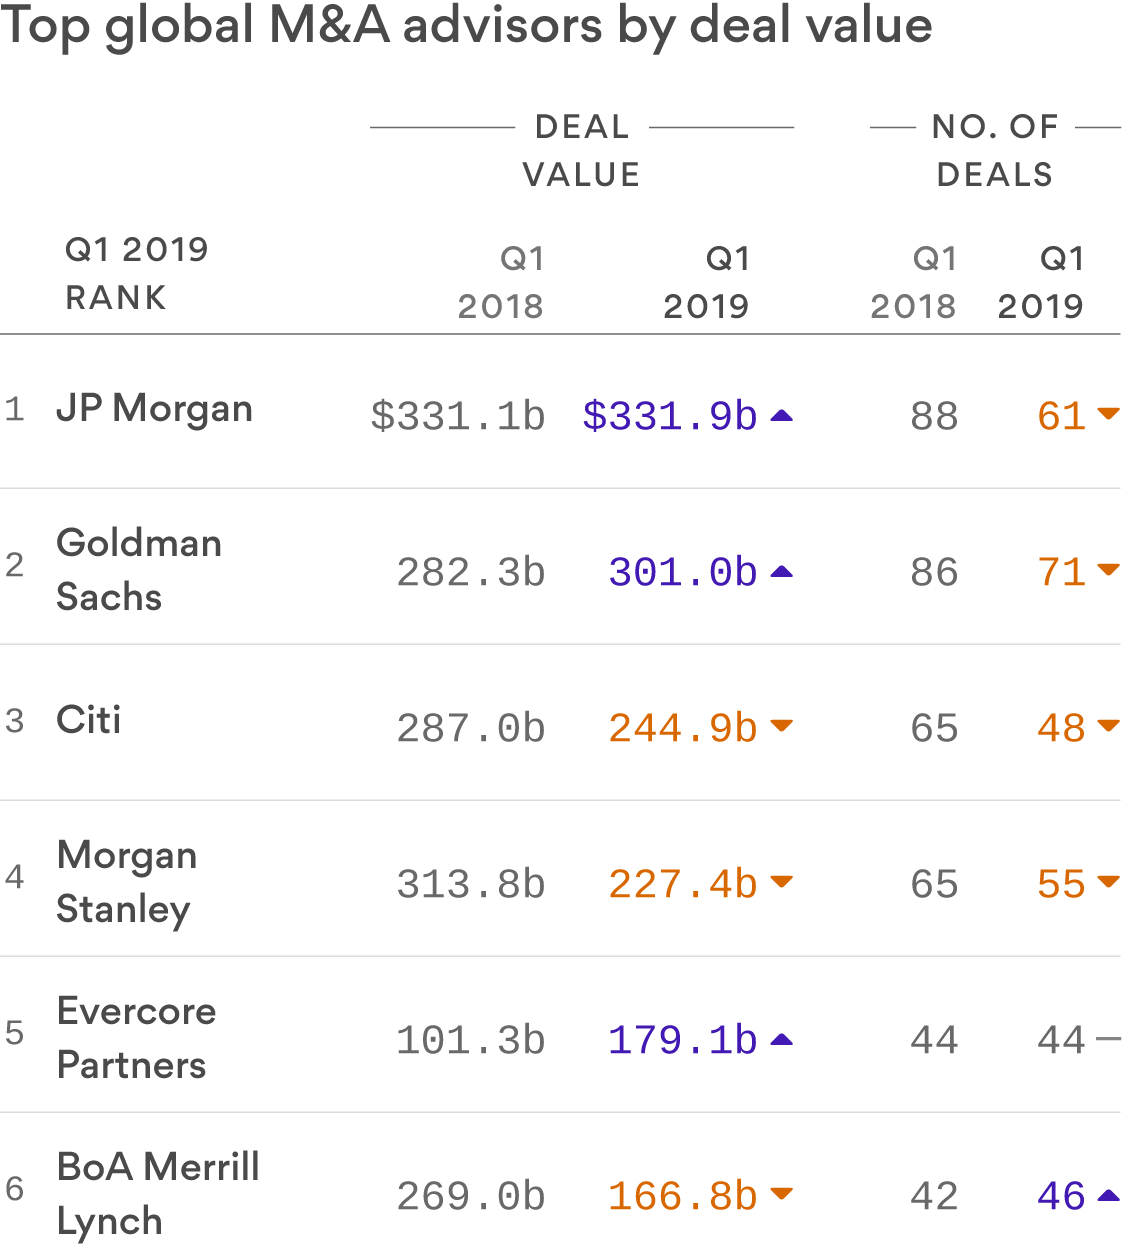 JP Morgan and Goldman Sachs led the way on deal value among M&A advisers in Q1 2019